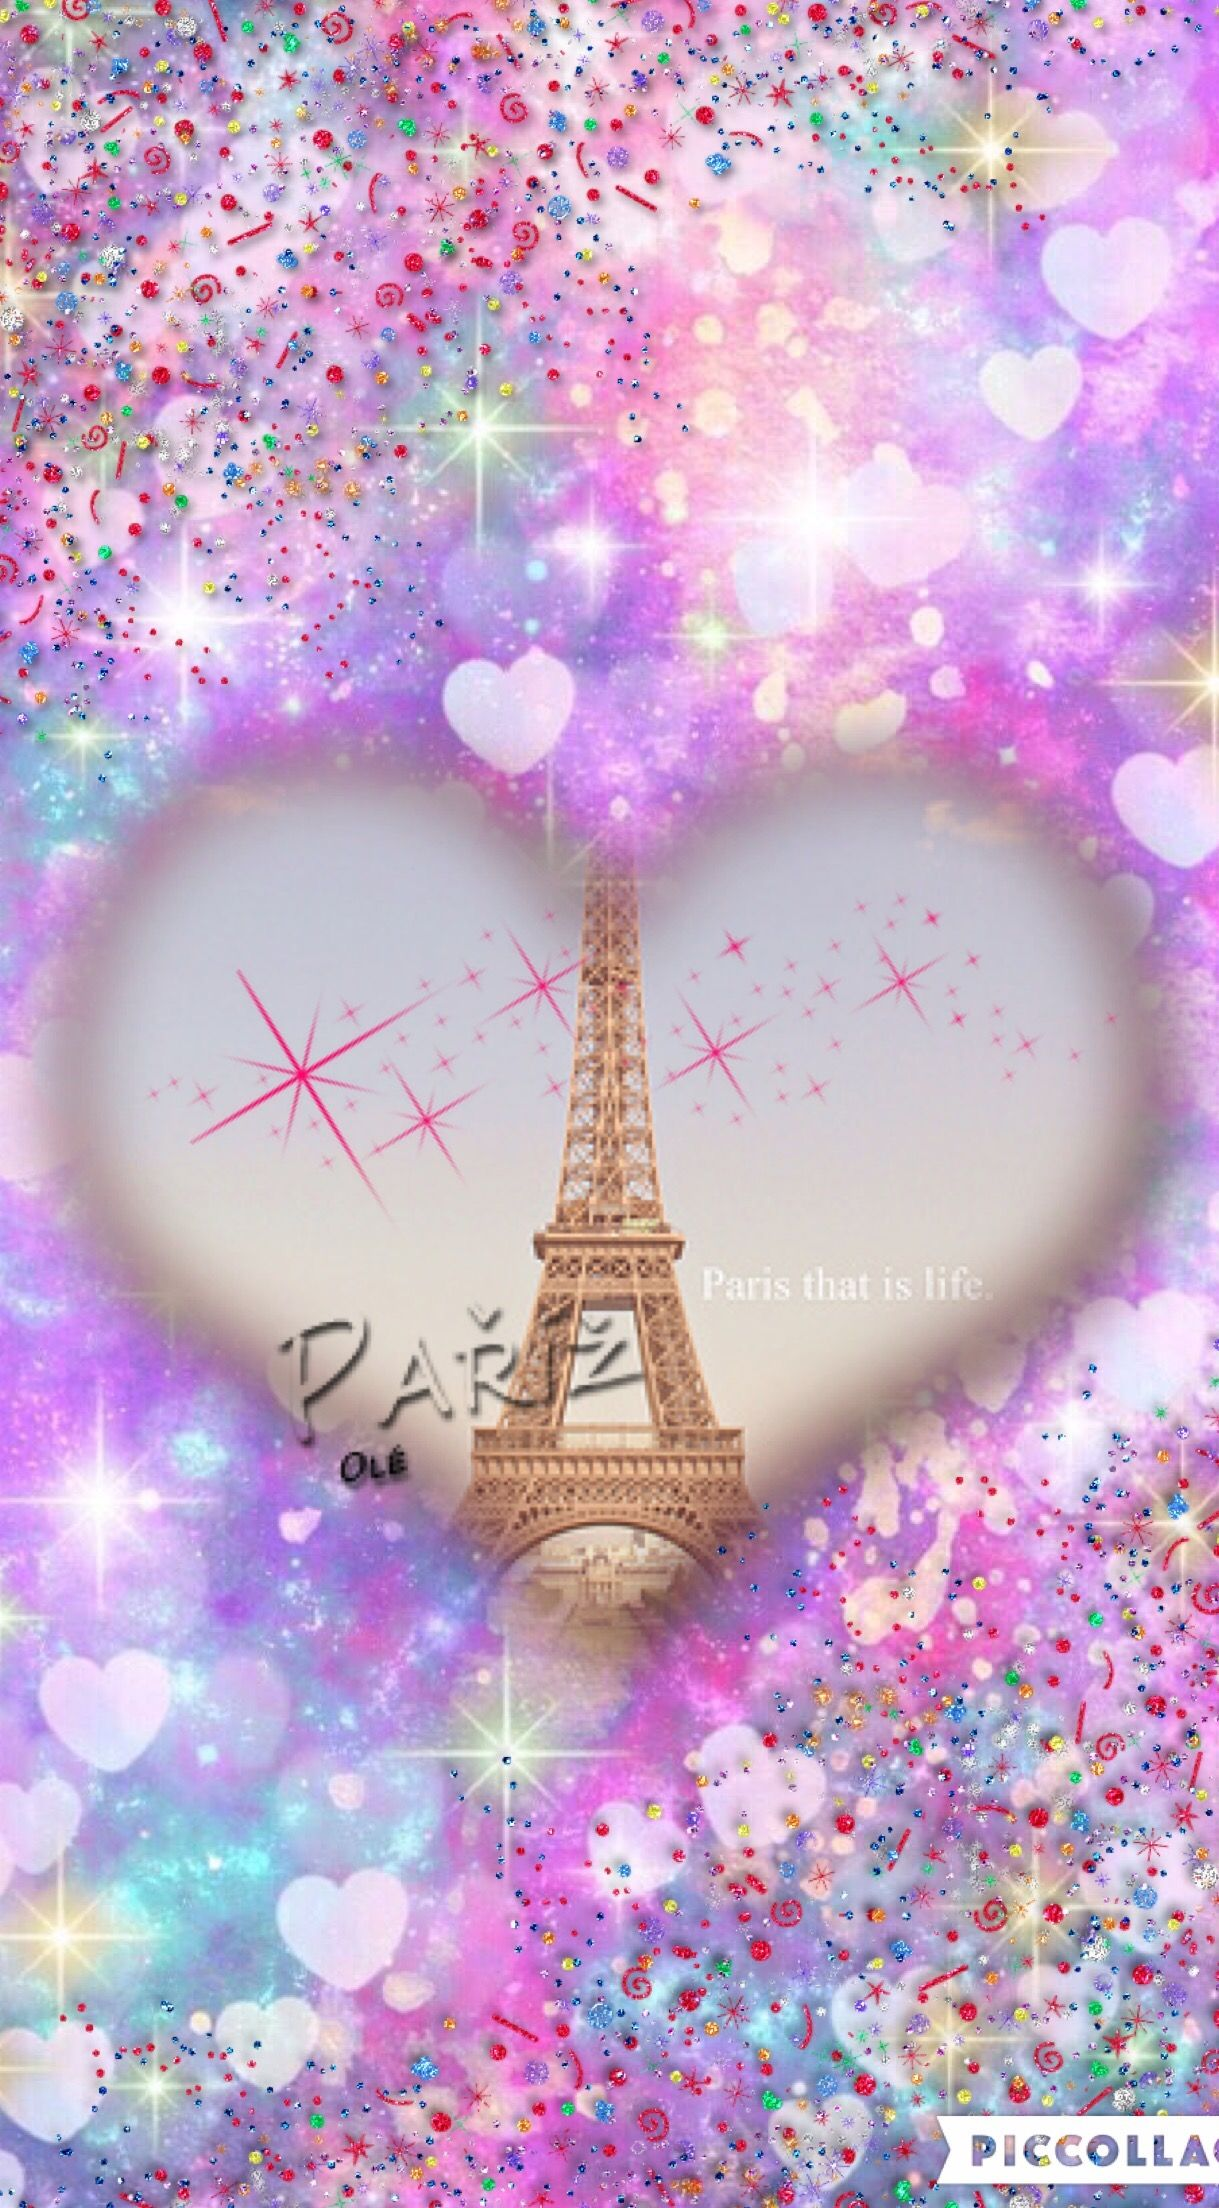 Girly Galaxy Wallpaper 00253c772fcd77a6f6410c657897cb34 Paris